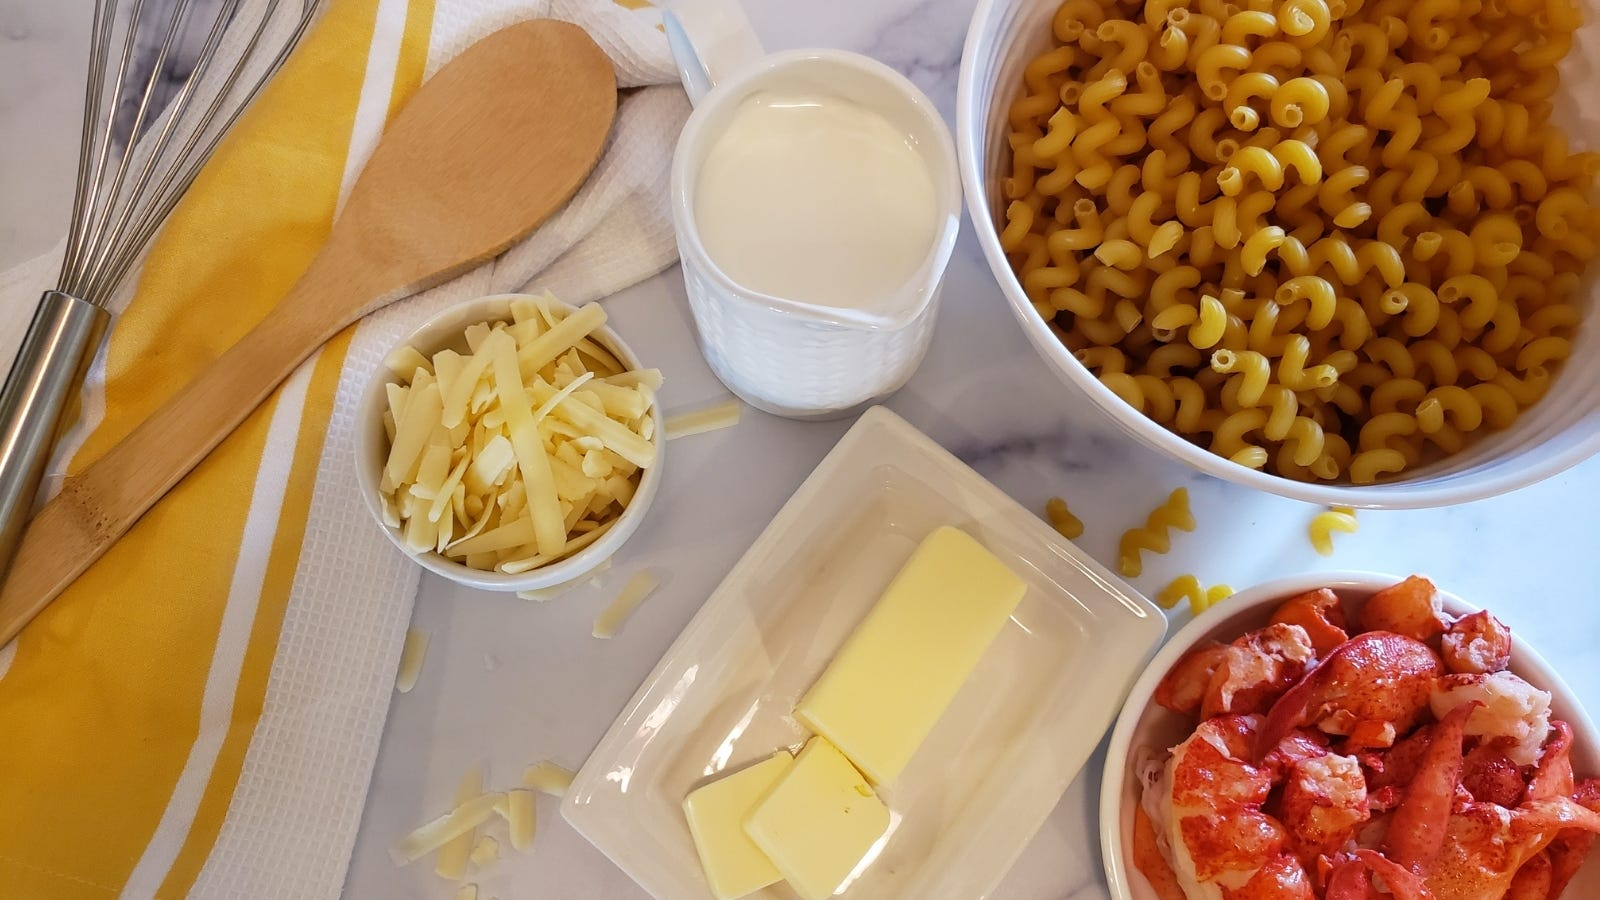 Pasta, cream, cheese, butter and lobster meat; all the ingredients and some tools needed to make lobster macaroni and cheese.